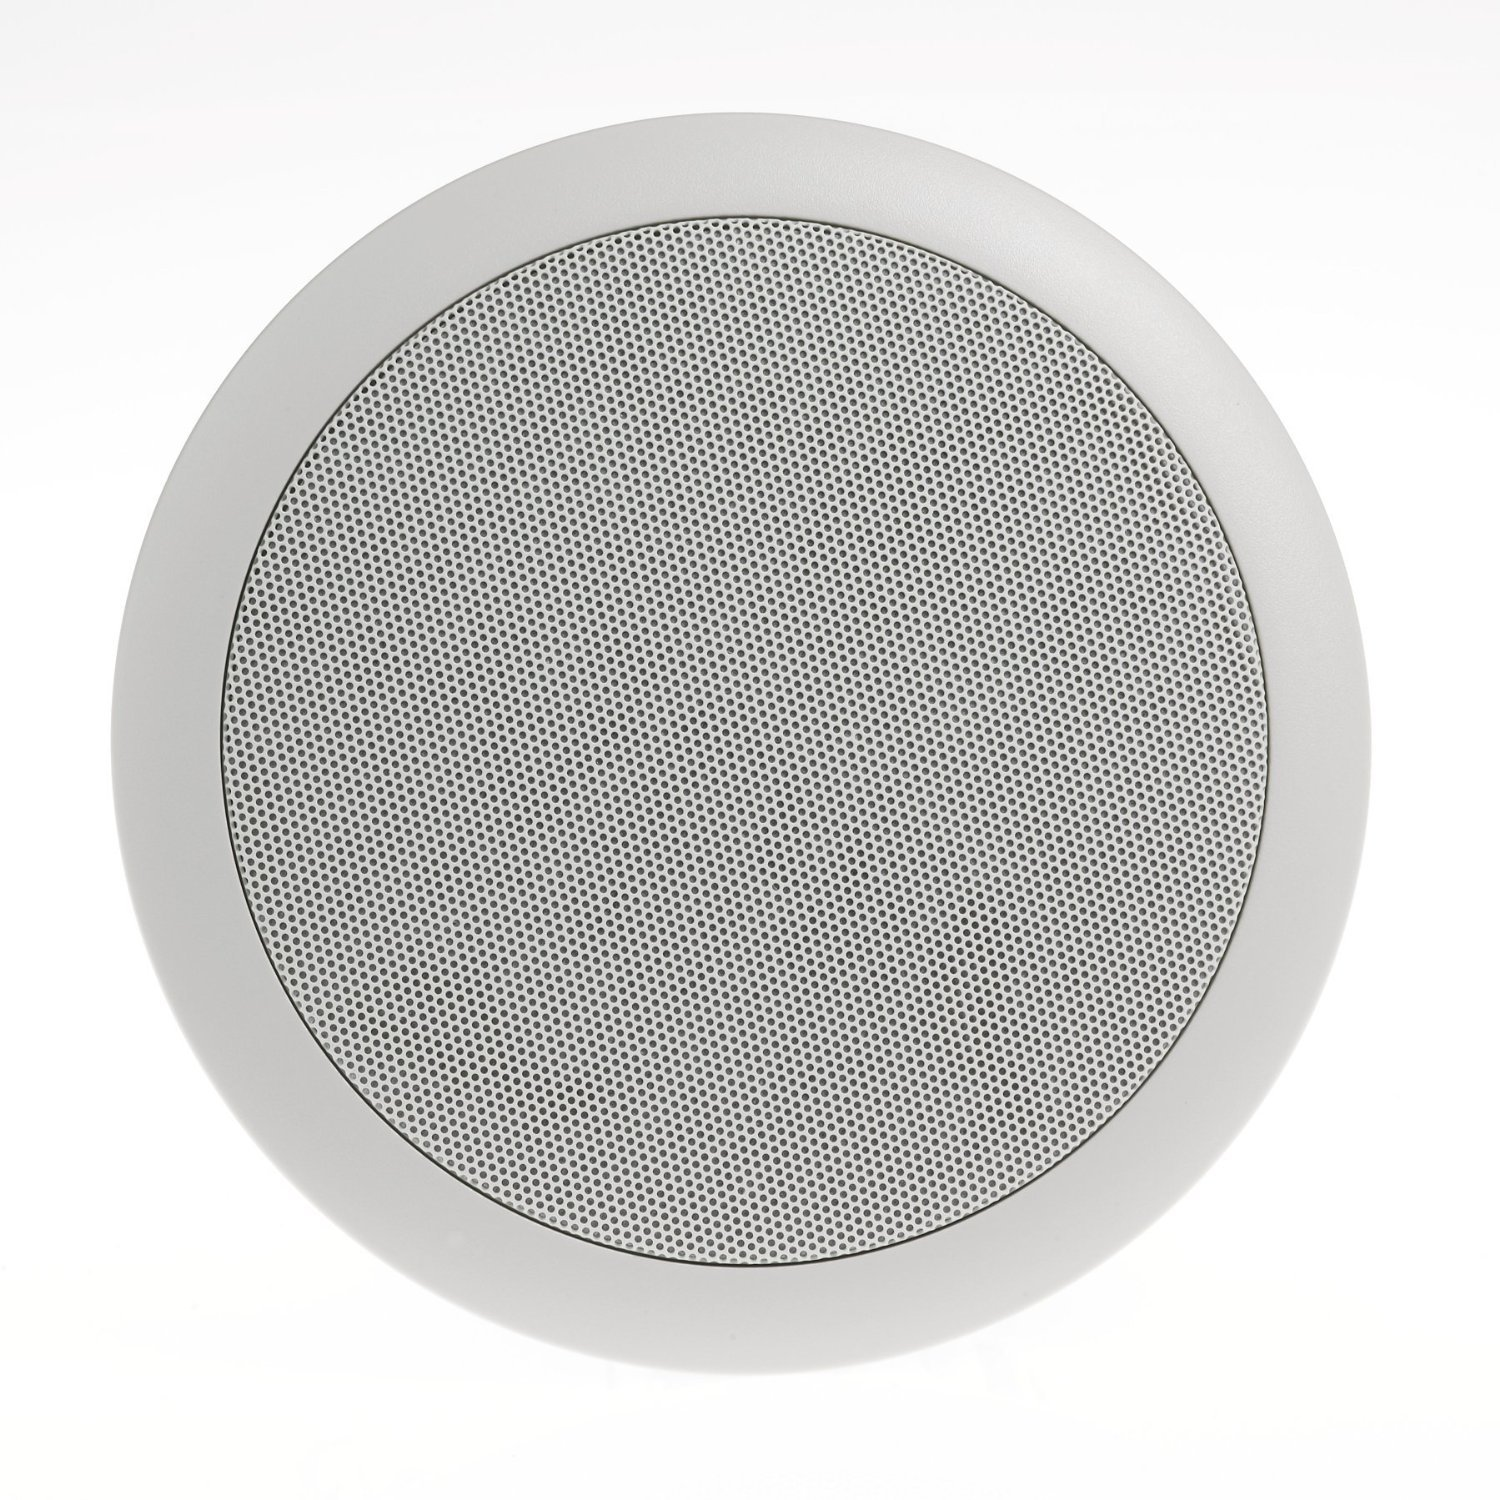 """Legrand - On-Q 3647640201 6.5"""" evoQ 1000 Series In-Ceiling Speakers (Pair), 2 Way Mount Speaker System with Mylar Tweeter Type, Flush Mount, White by Legrand-On-Q"""